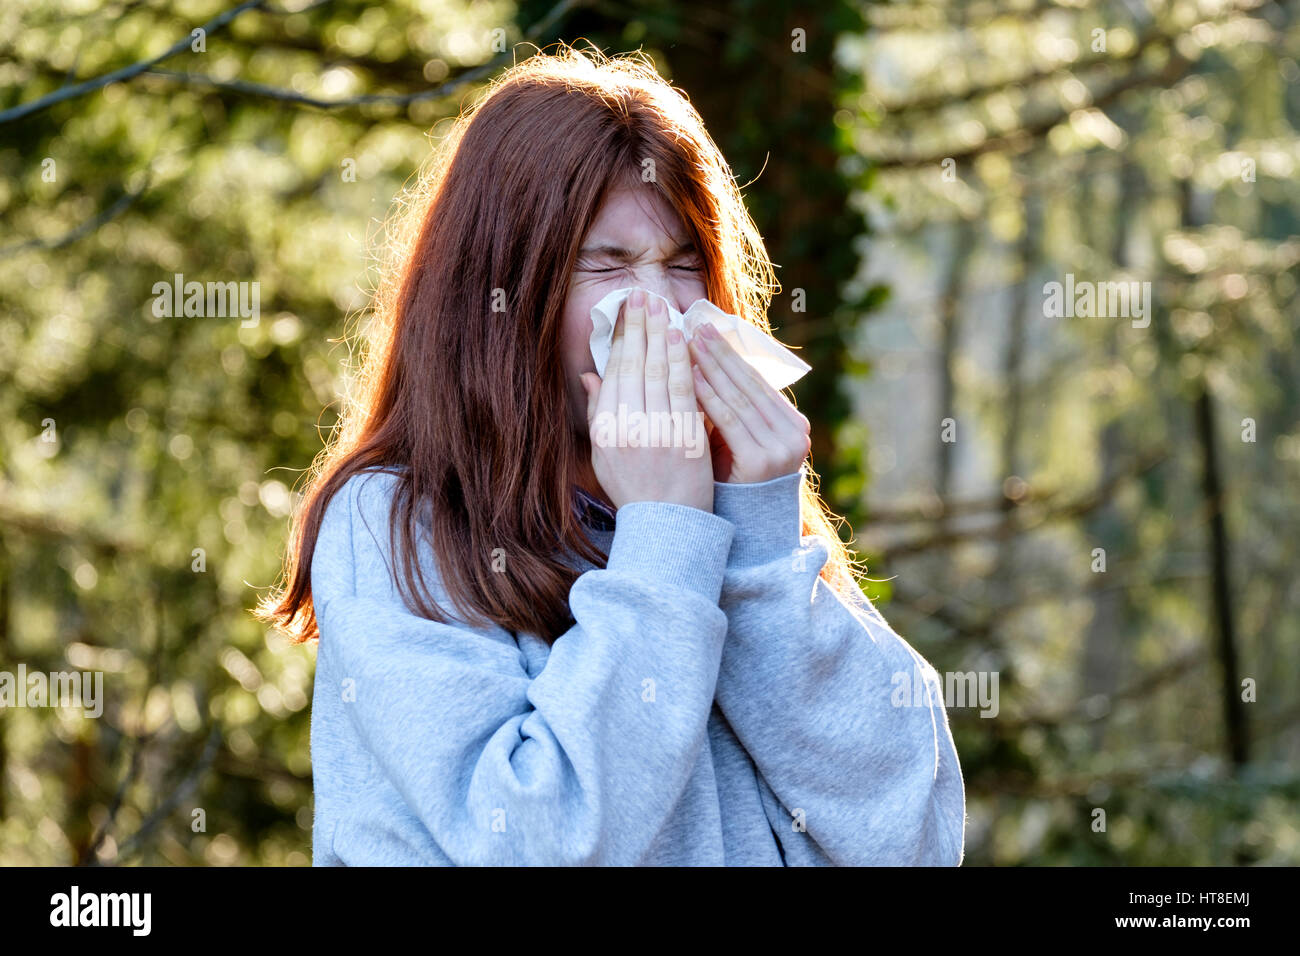 Teenager, girl wiping her nose, runny nose, allergy, Germany - Stock Image